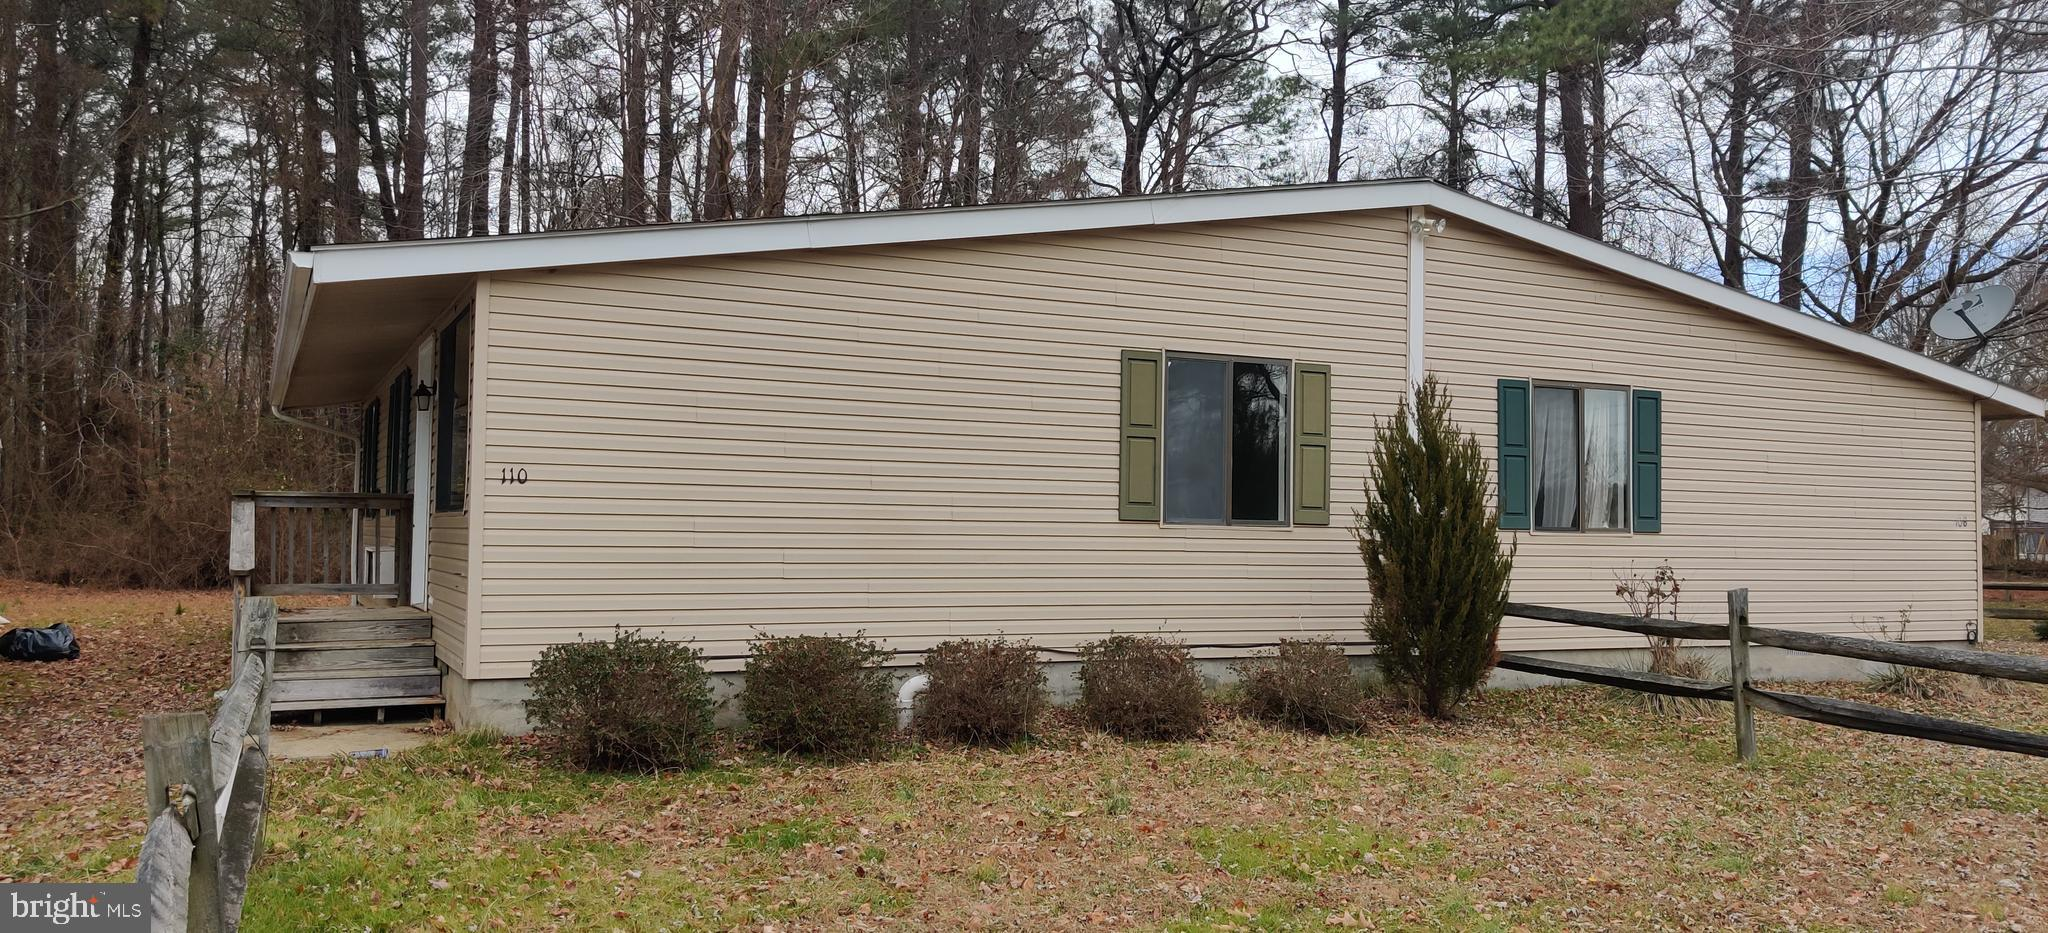 Great opportunity in to own a home in Grasonville - you won't find a better deal on a move-in ready